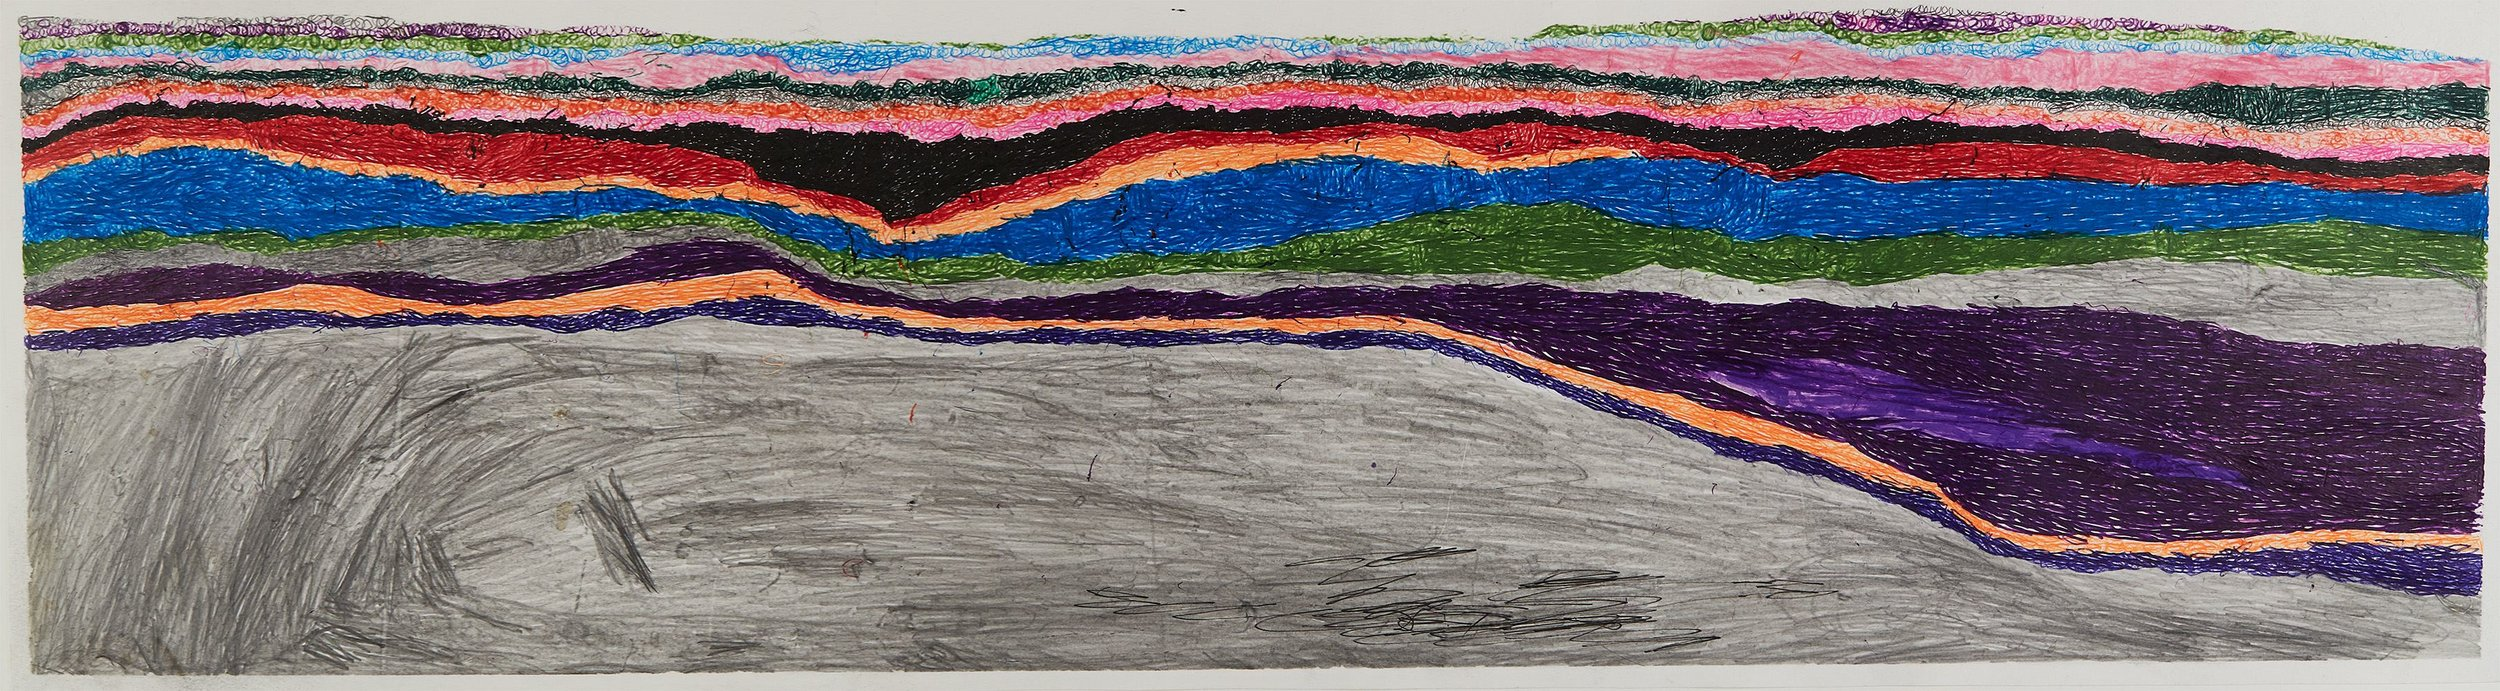 Joseph Lambert  Untitled  , 2017 Ink, marker, pencil, crayon on paper 9.45 x 33.66 inches 24 x 85.5 cm JLam 27